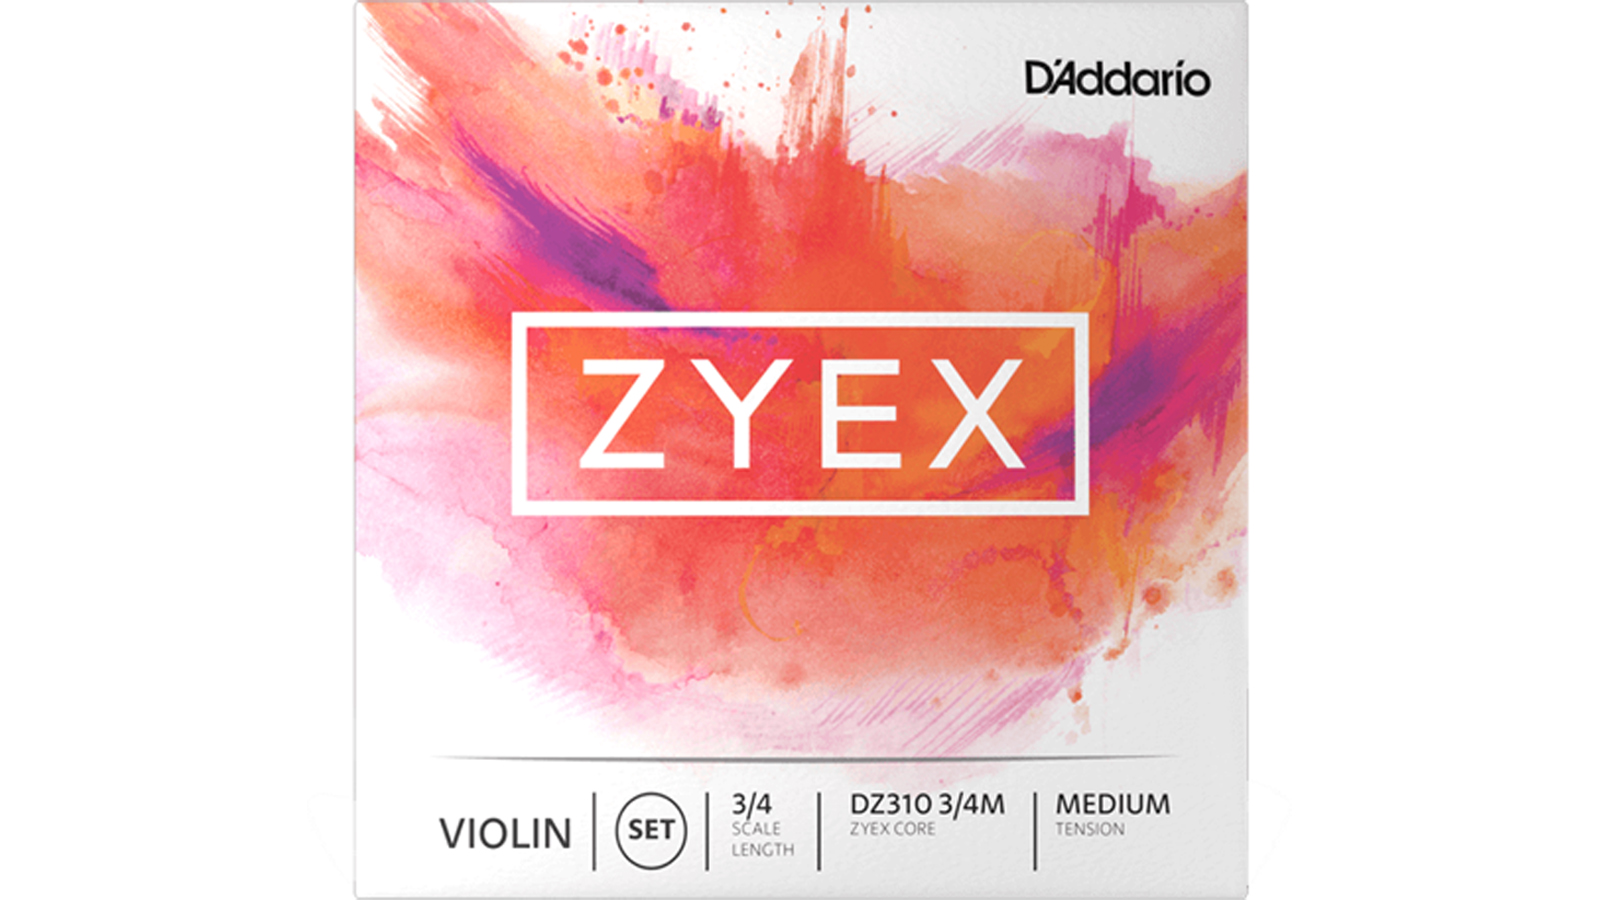 Daddario Zyex Violin Saiten 3/4 Scale Medium Tension